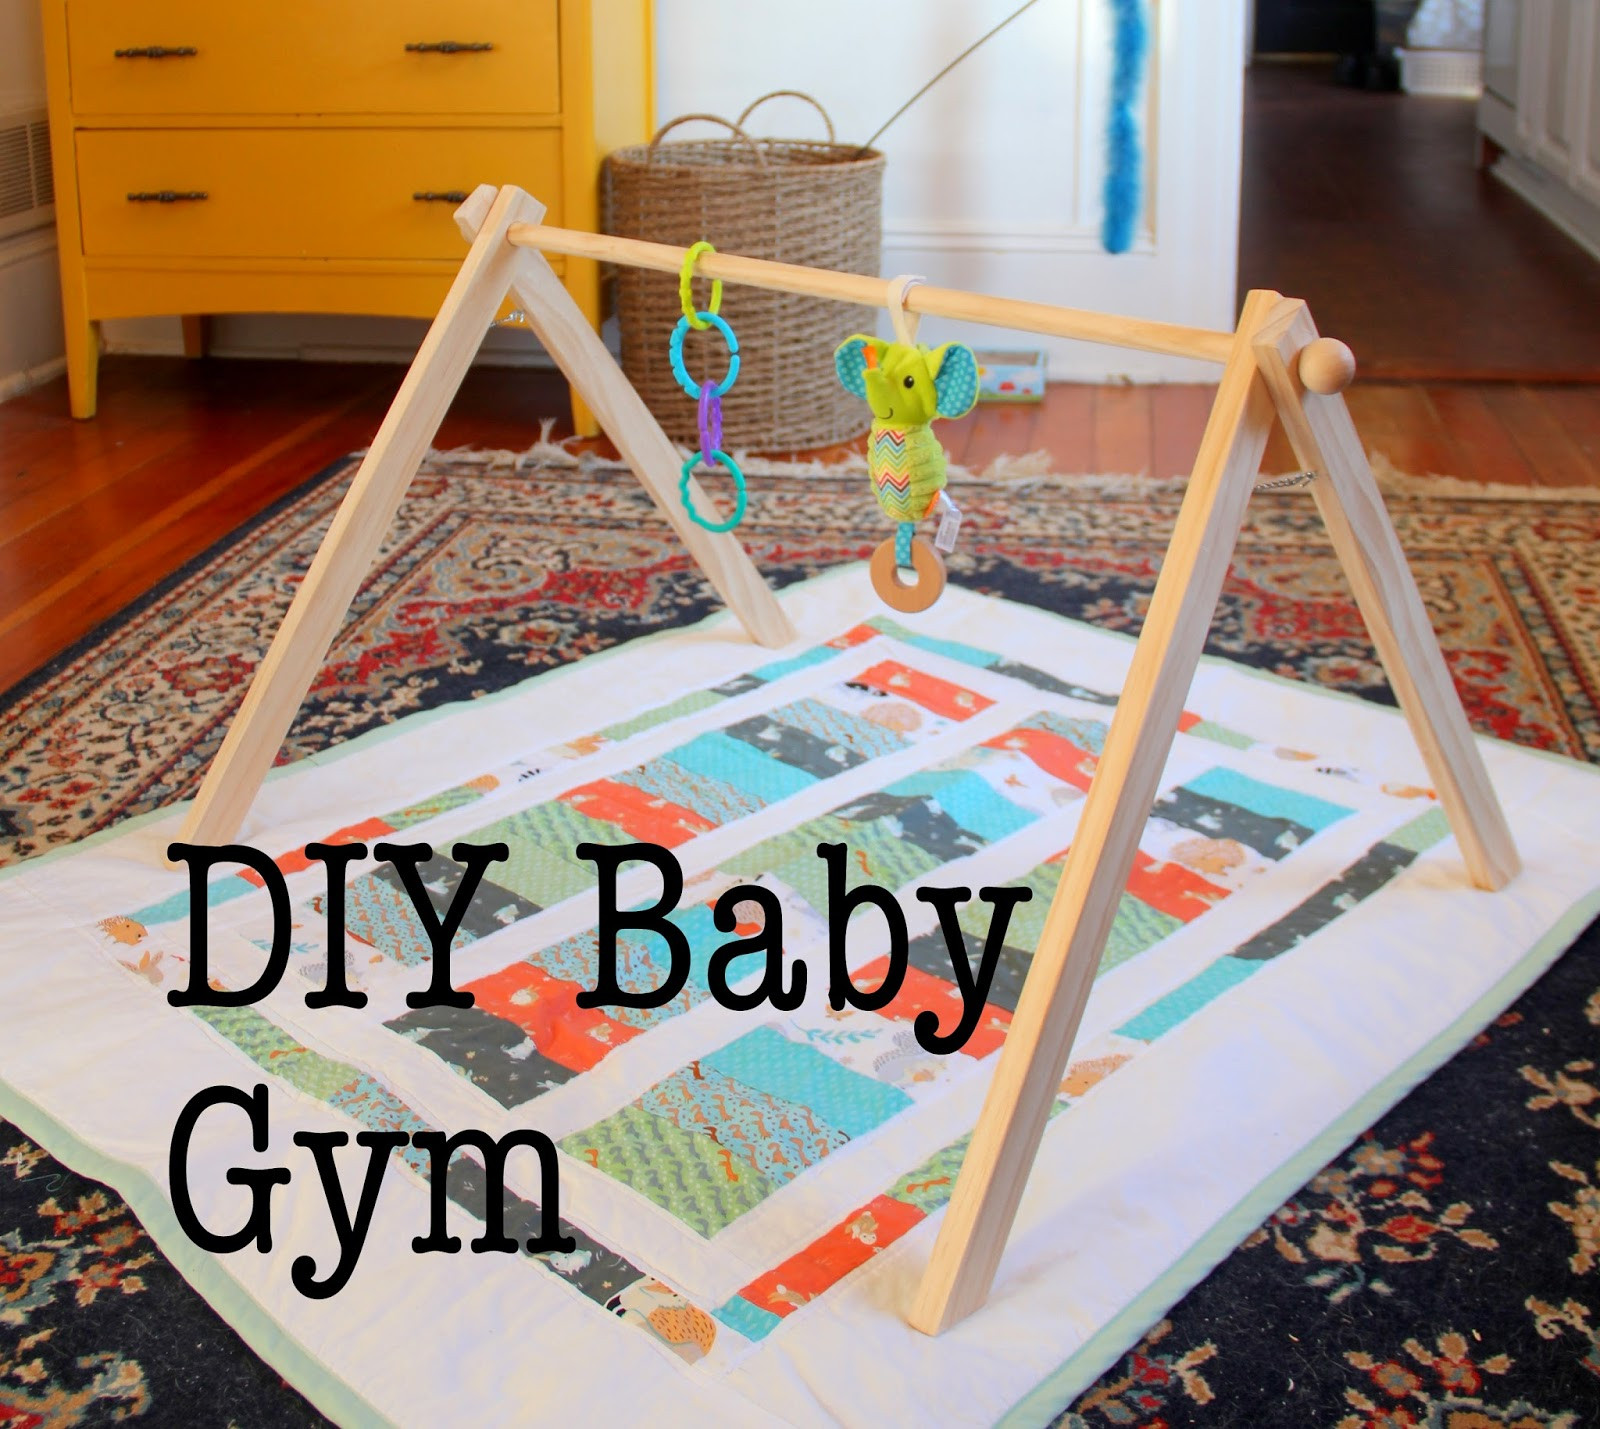 Best ideas about DIY Baby Gym . Save or Pin EAK A House DIY Baby Gym Now.